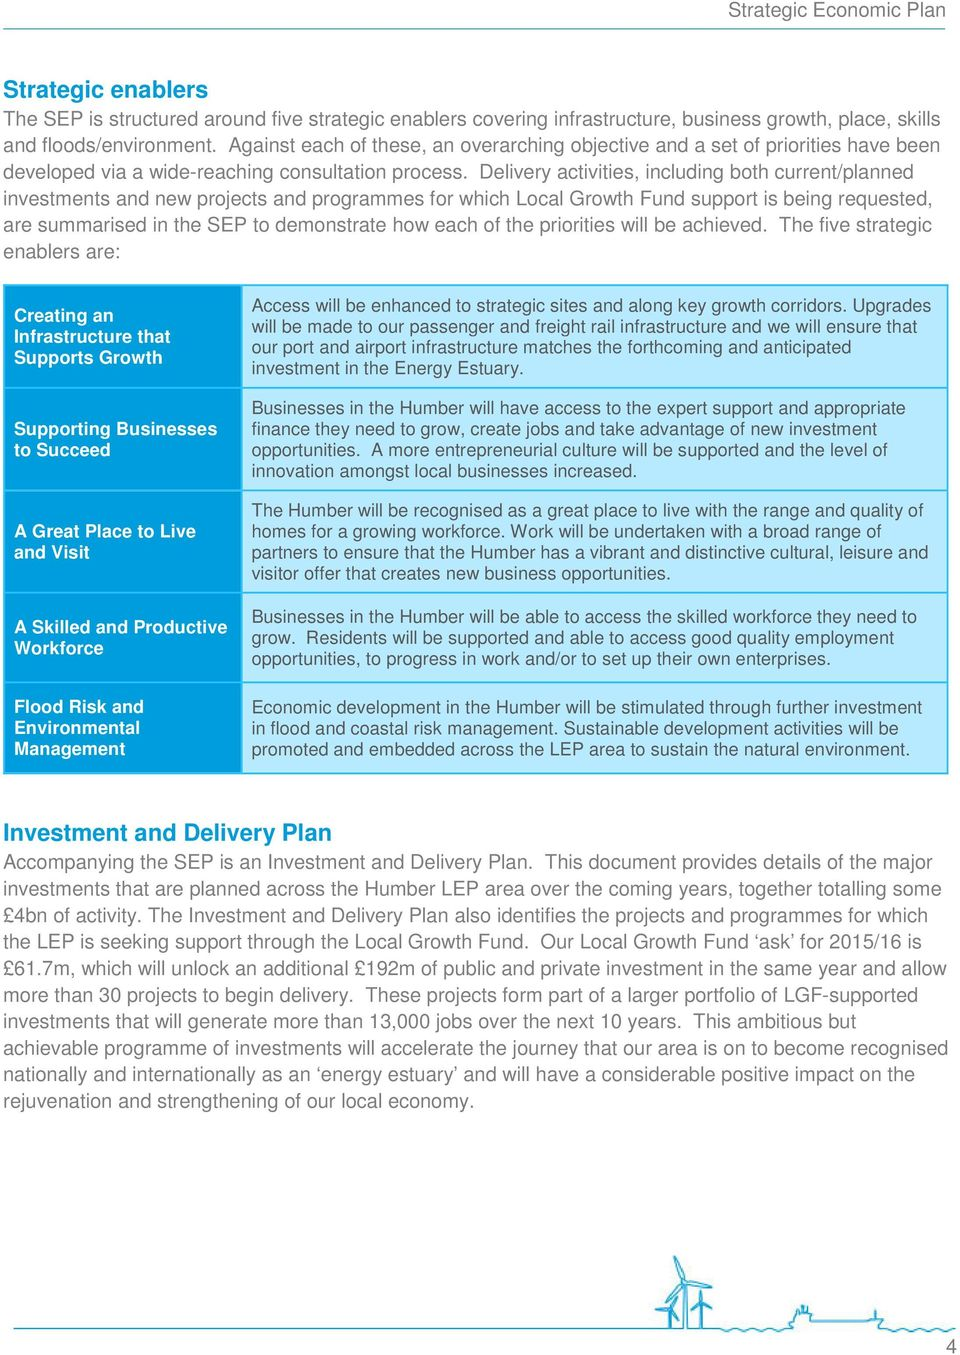 Delivery activities, including both current/planned investments and new projects and programmes for which Local Growth Fund support is being requested, are summarised in the SEP to demonstrate how